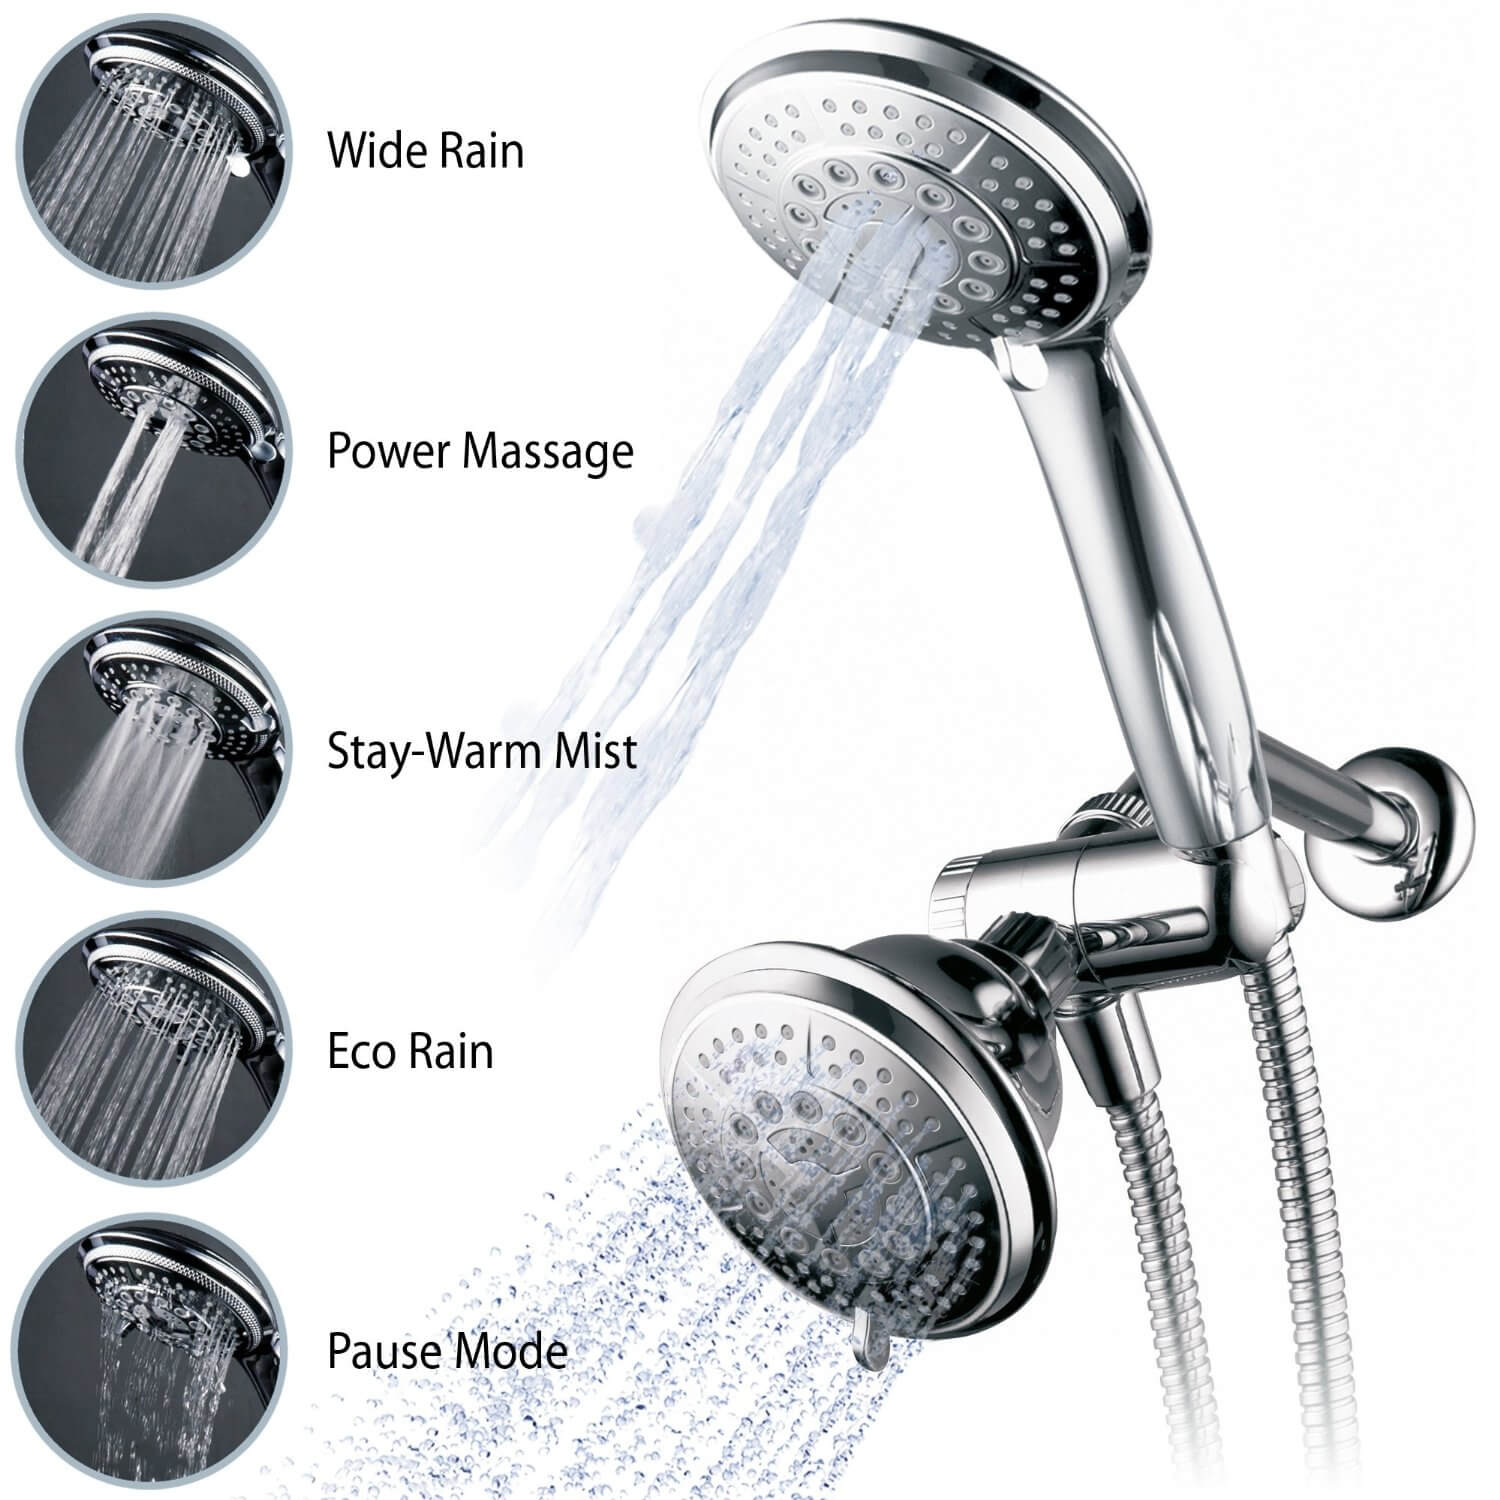 Best Handheld Shower Head | Reviews & Guide 2018 | Simple Toilet